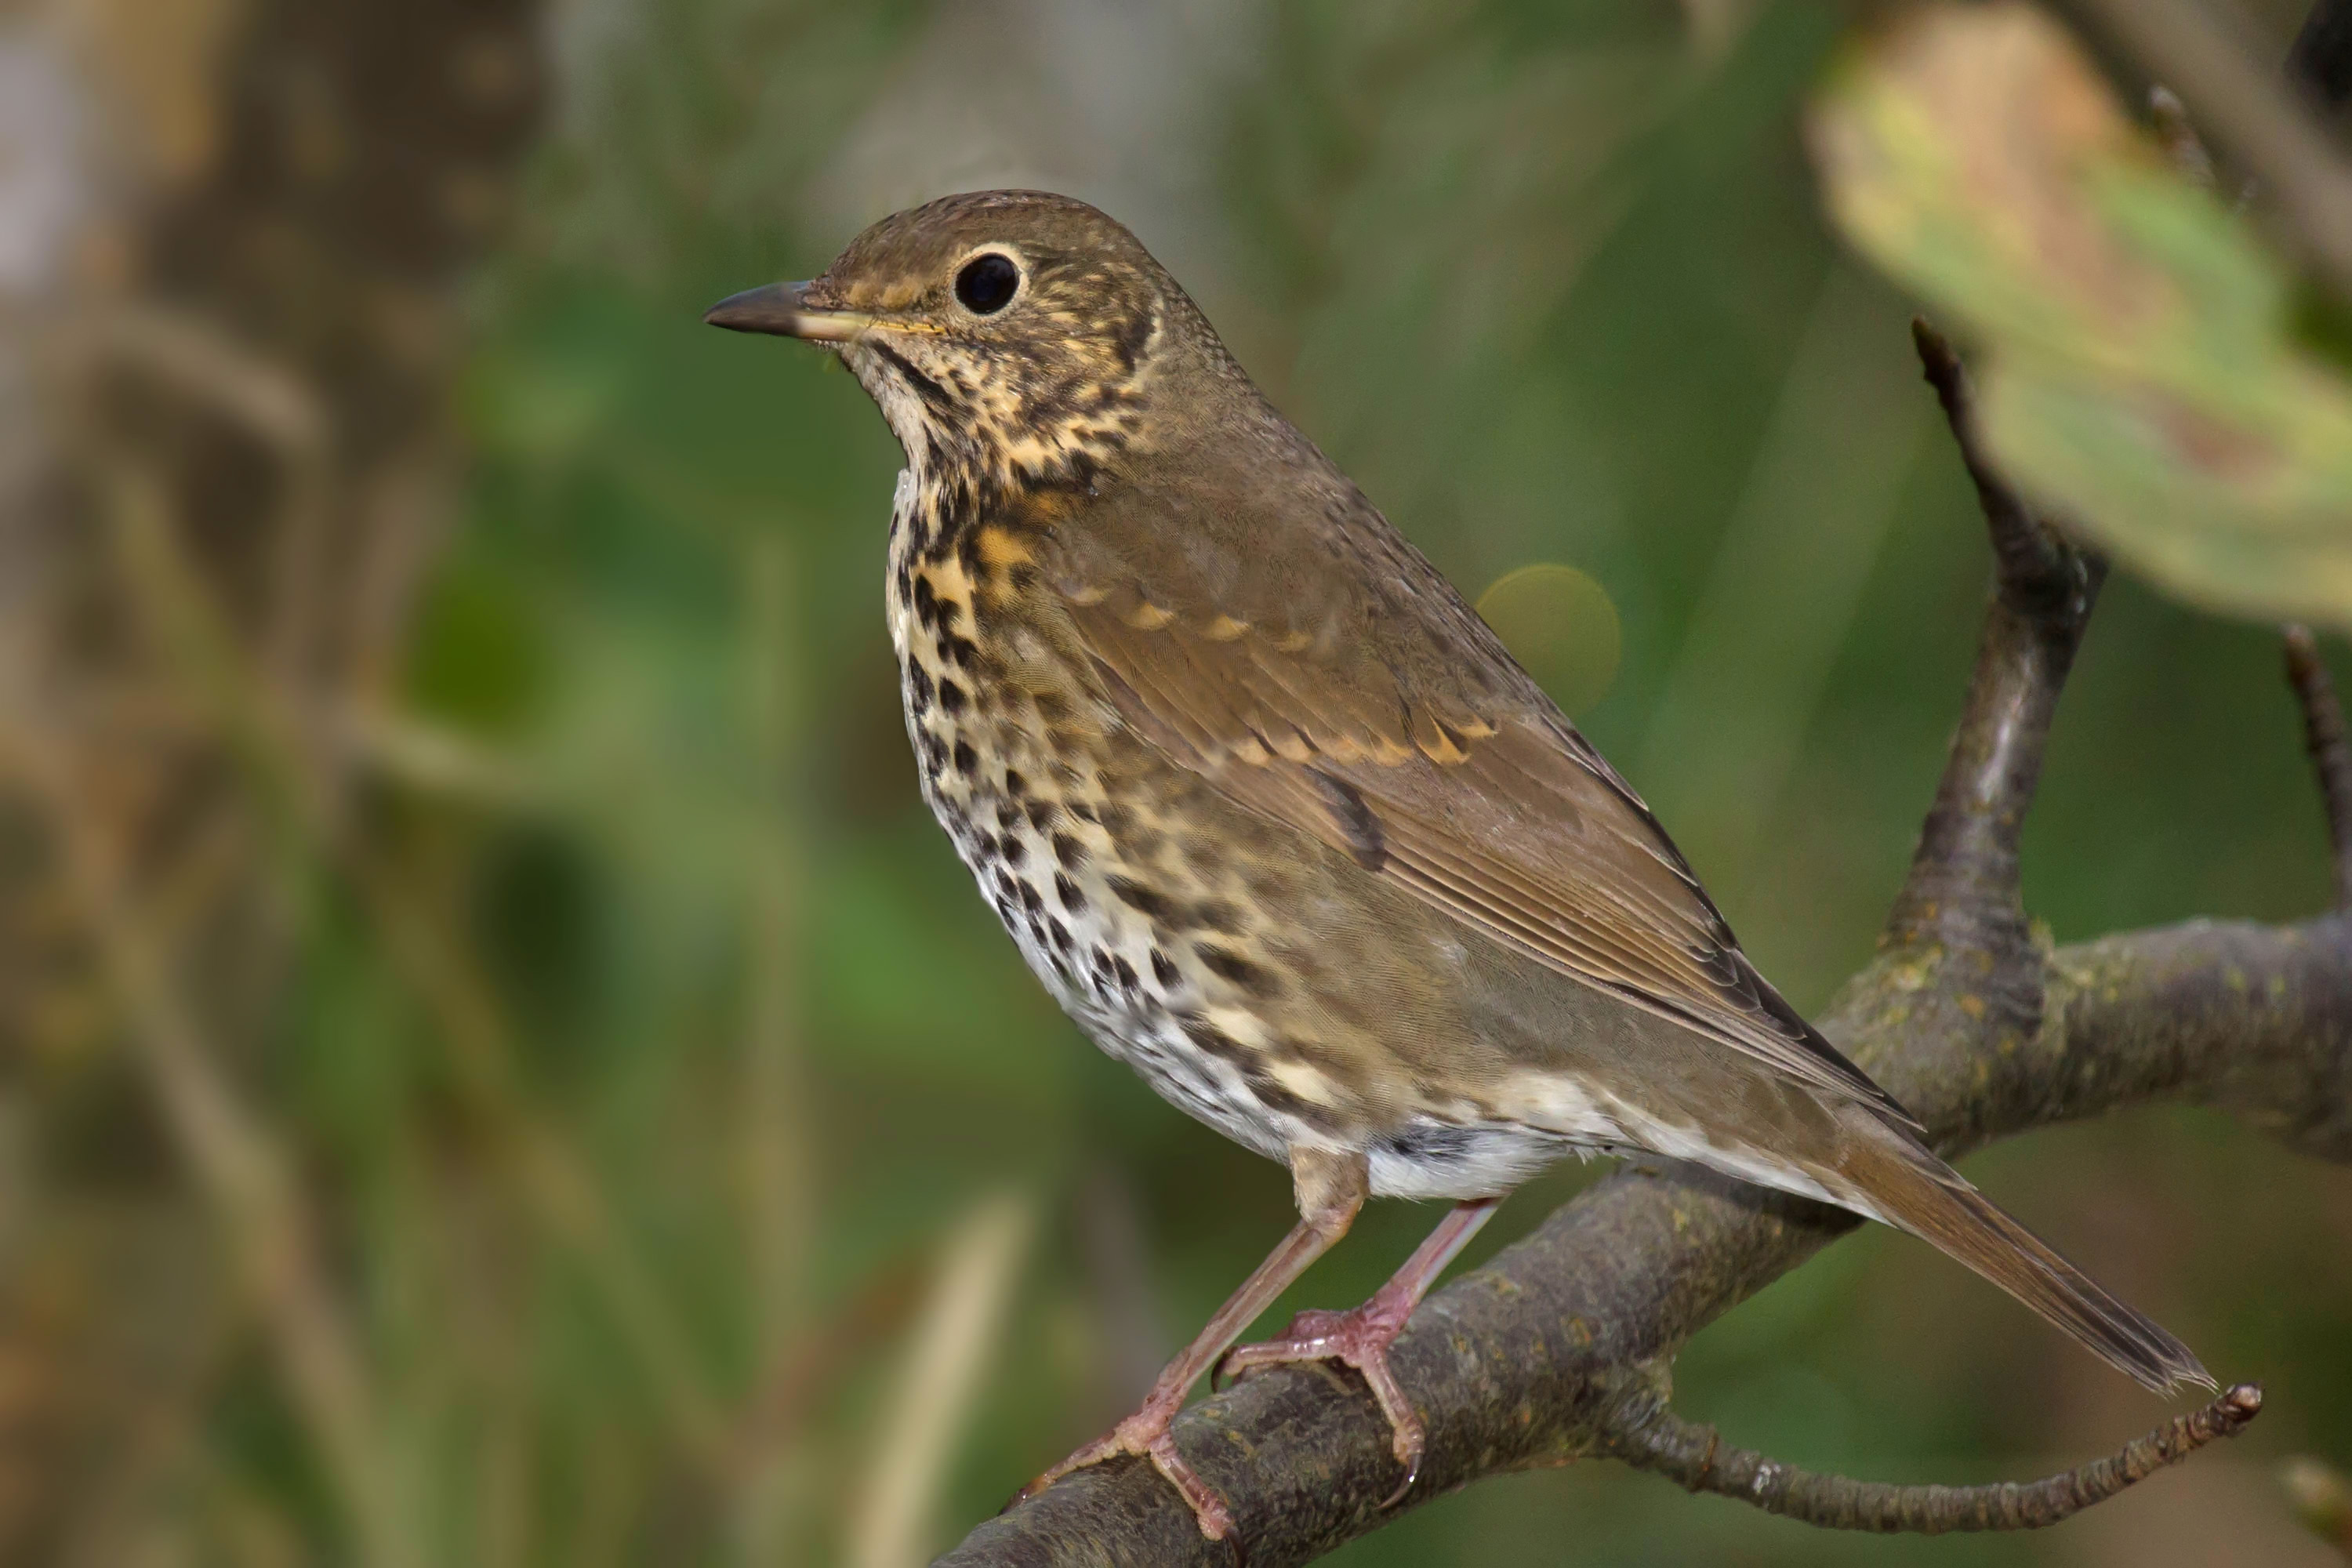 Song_Thrush_Turdus_philomelos_Andreas_Trepte_www.photo-natur.de_Wikimedia